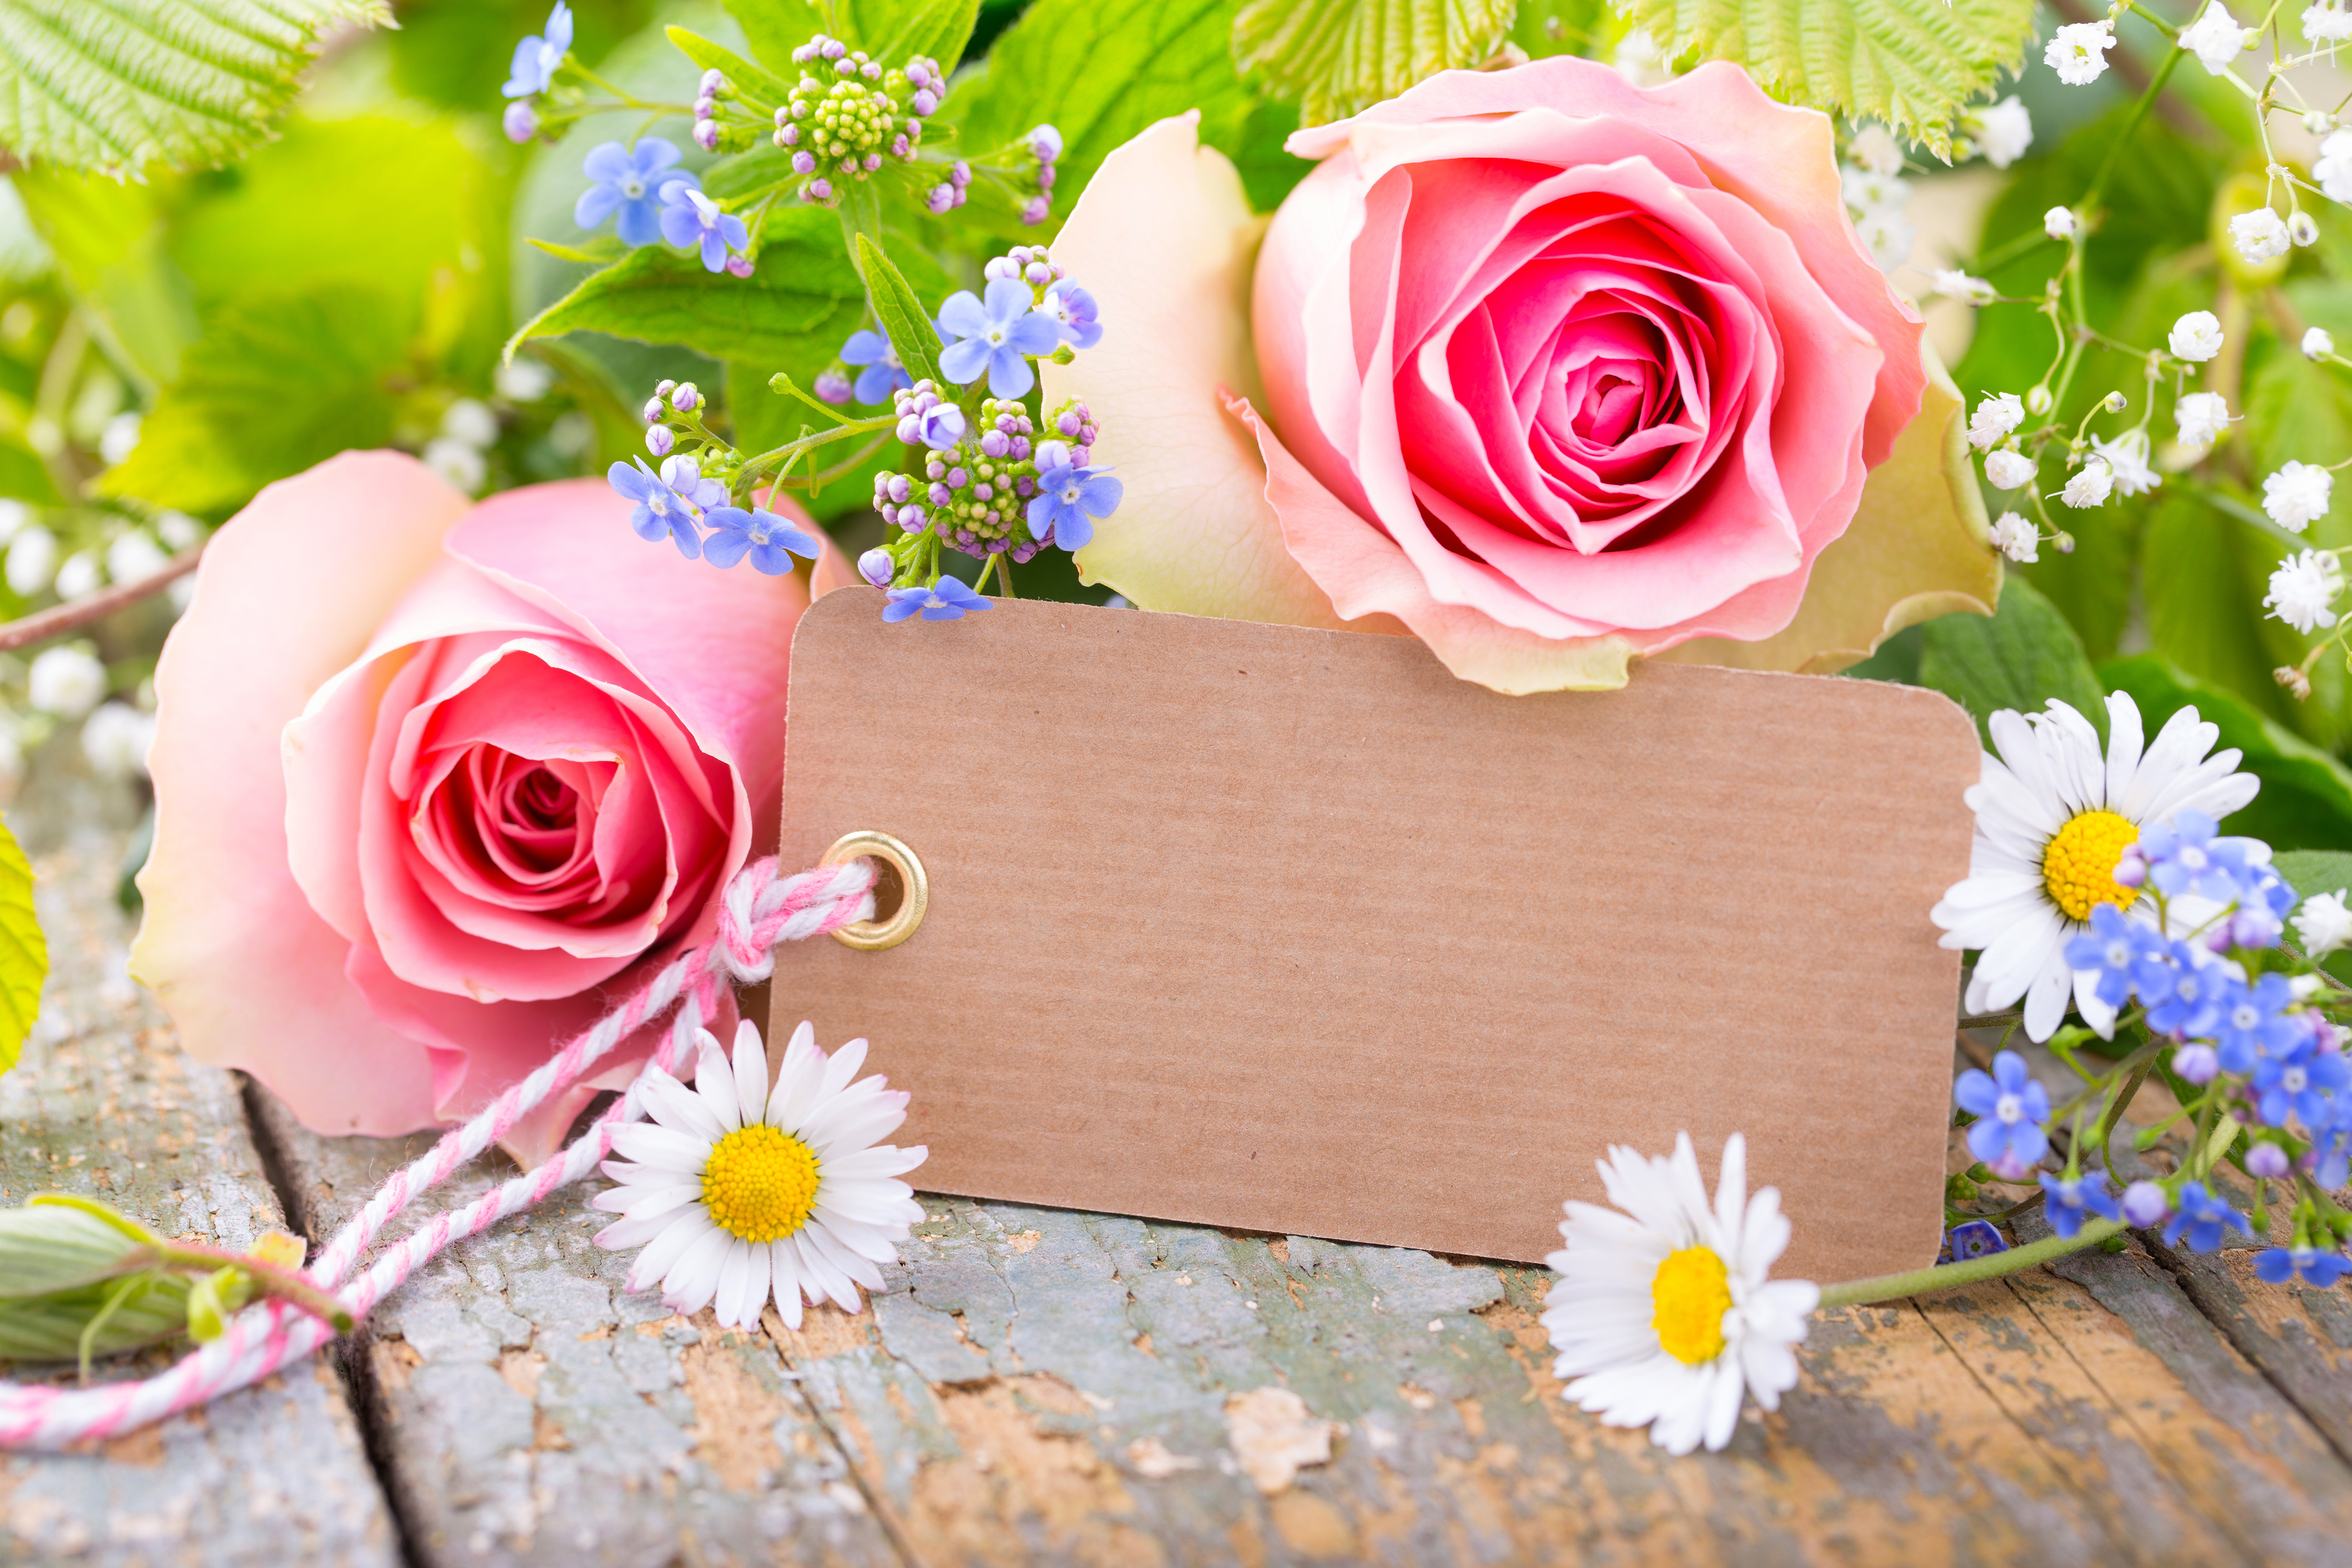 Daisy rose flower and paper tag 56187